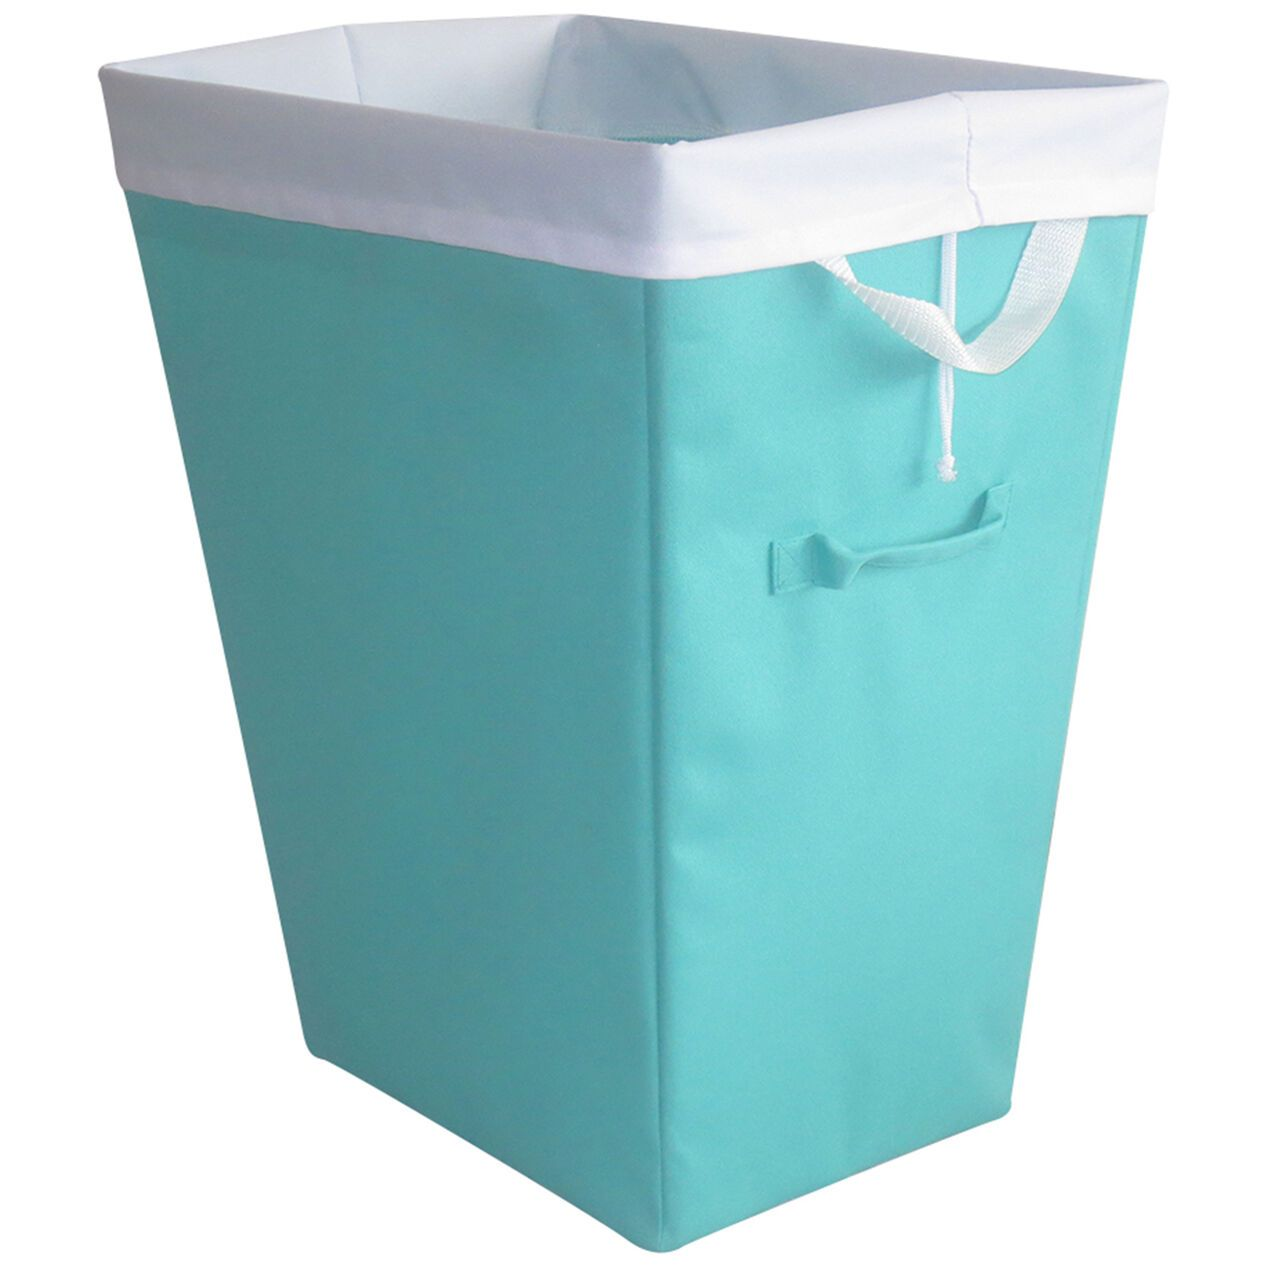 Teal Laundry Hamper At Home Laundry Hamper At Home Store